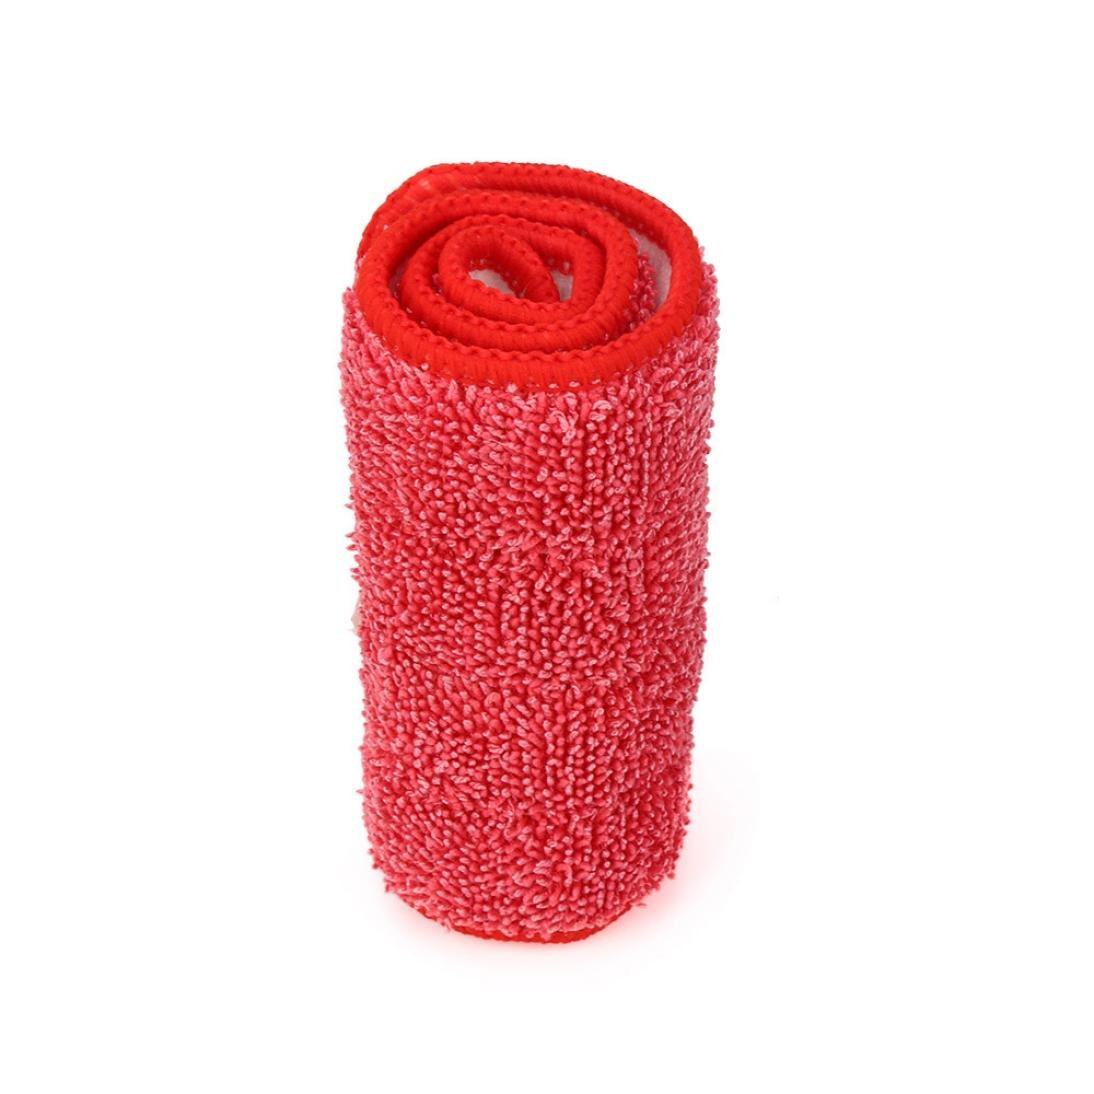 CYCTECH Replacement Microfiber Washable Spray Mop Dust Cloth Covers Mop Accessories Home Cleaning Tool (Red)